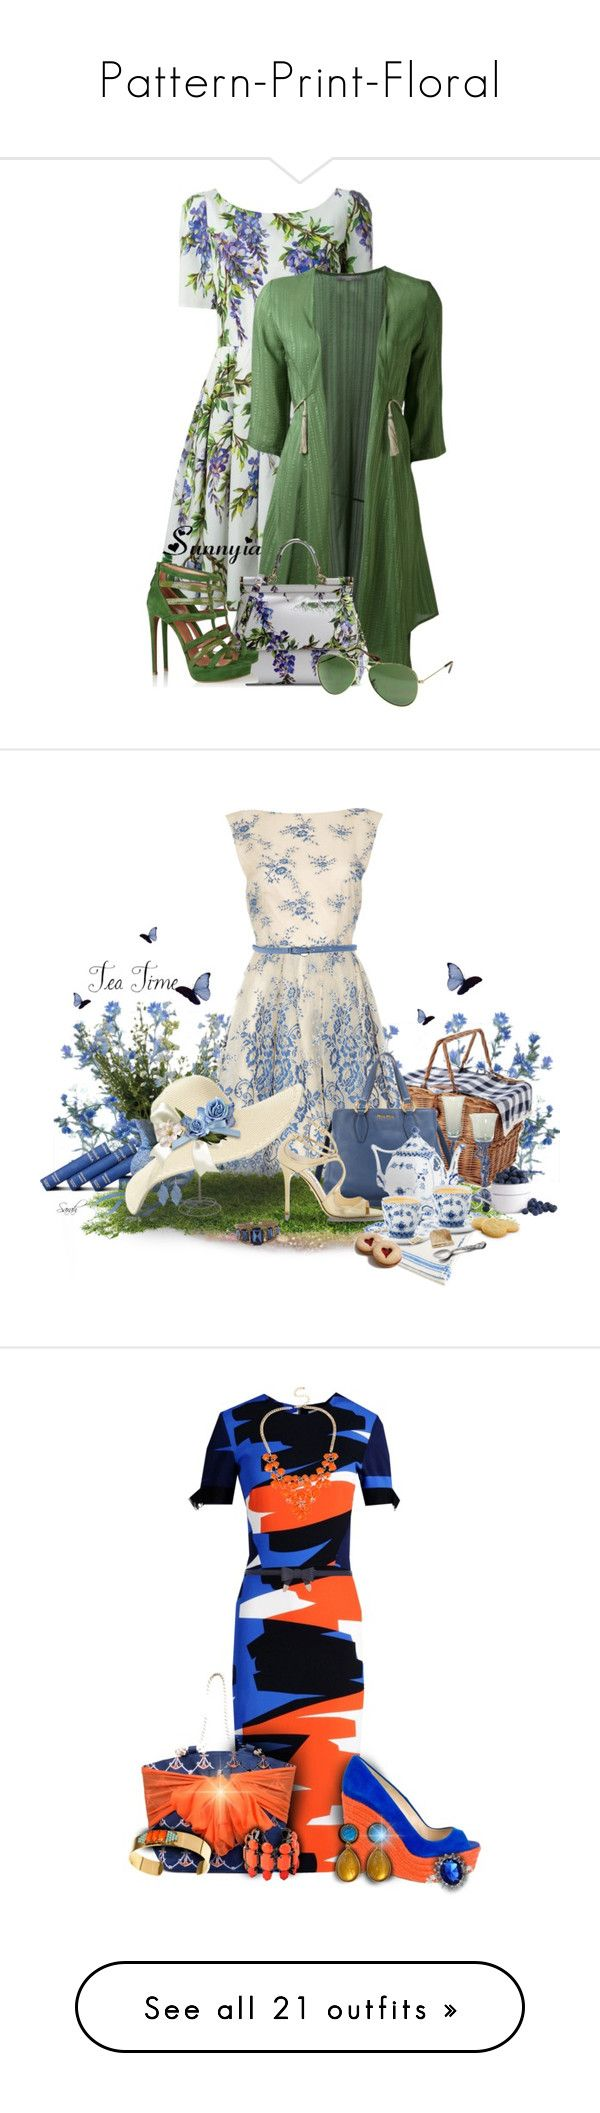 """""""Pattern-Print-Floral"""" by sunnyia ❤ liked on Polyvore featuring Dolce&Gabbana, Zeus+Dione, Alaïa, Lauren Conrad, Alice + Olivia, Miu Miu, Lauren Ralph Lauren, Reger by Janet Reger, Jimmy Choo and HTC"""